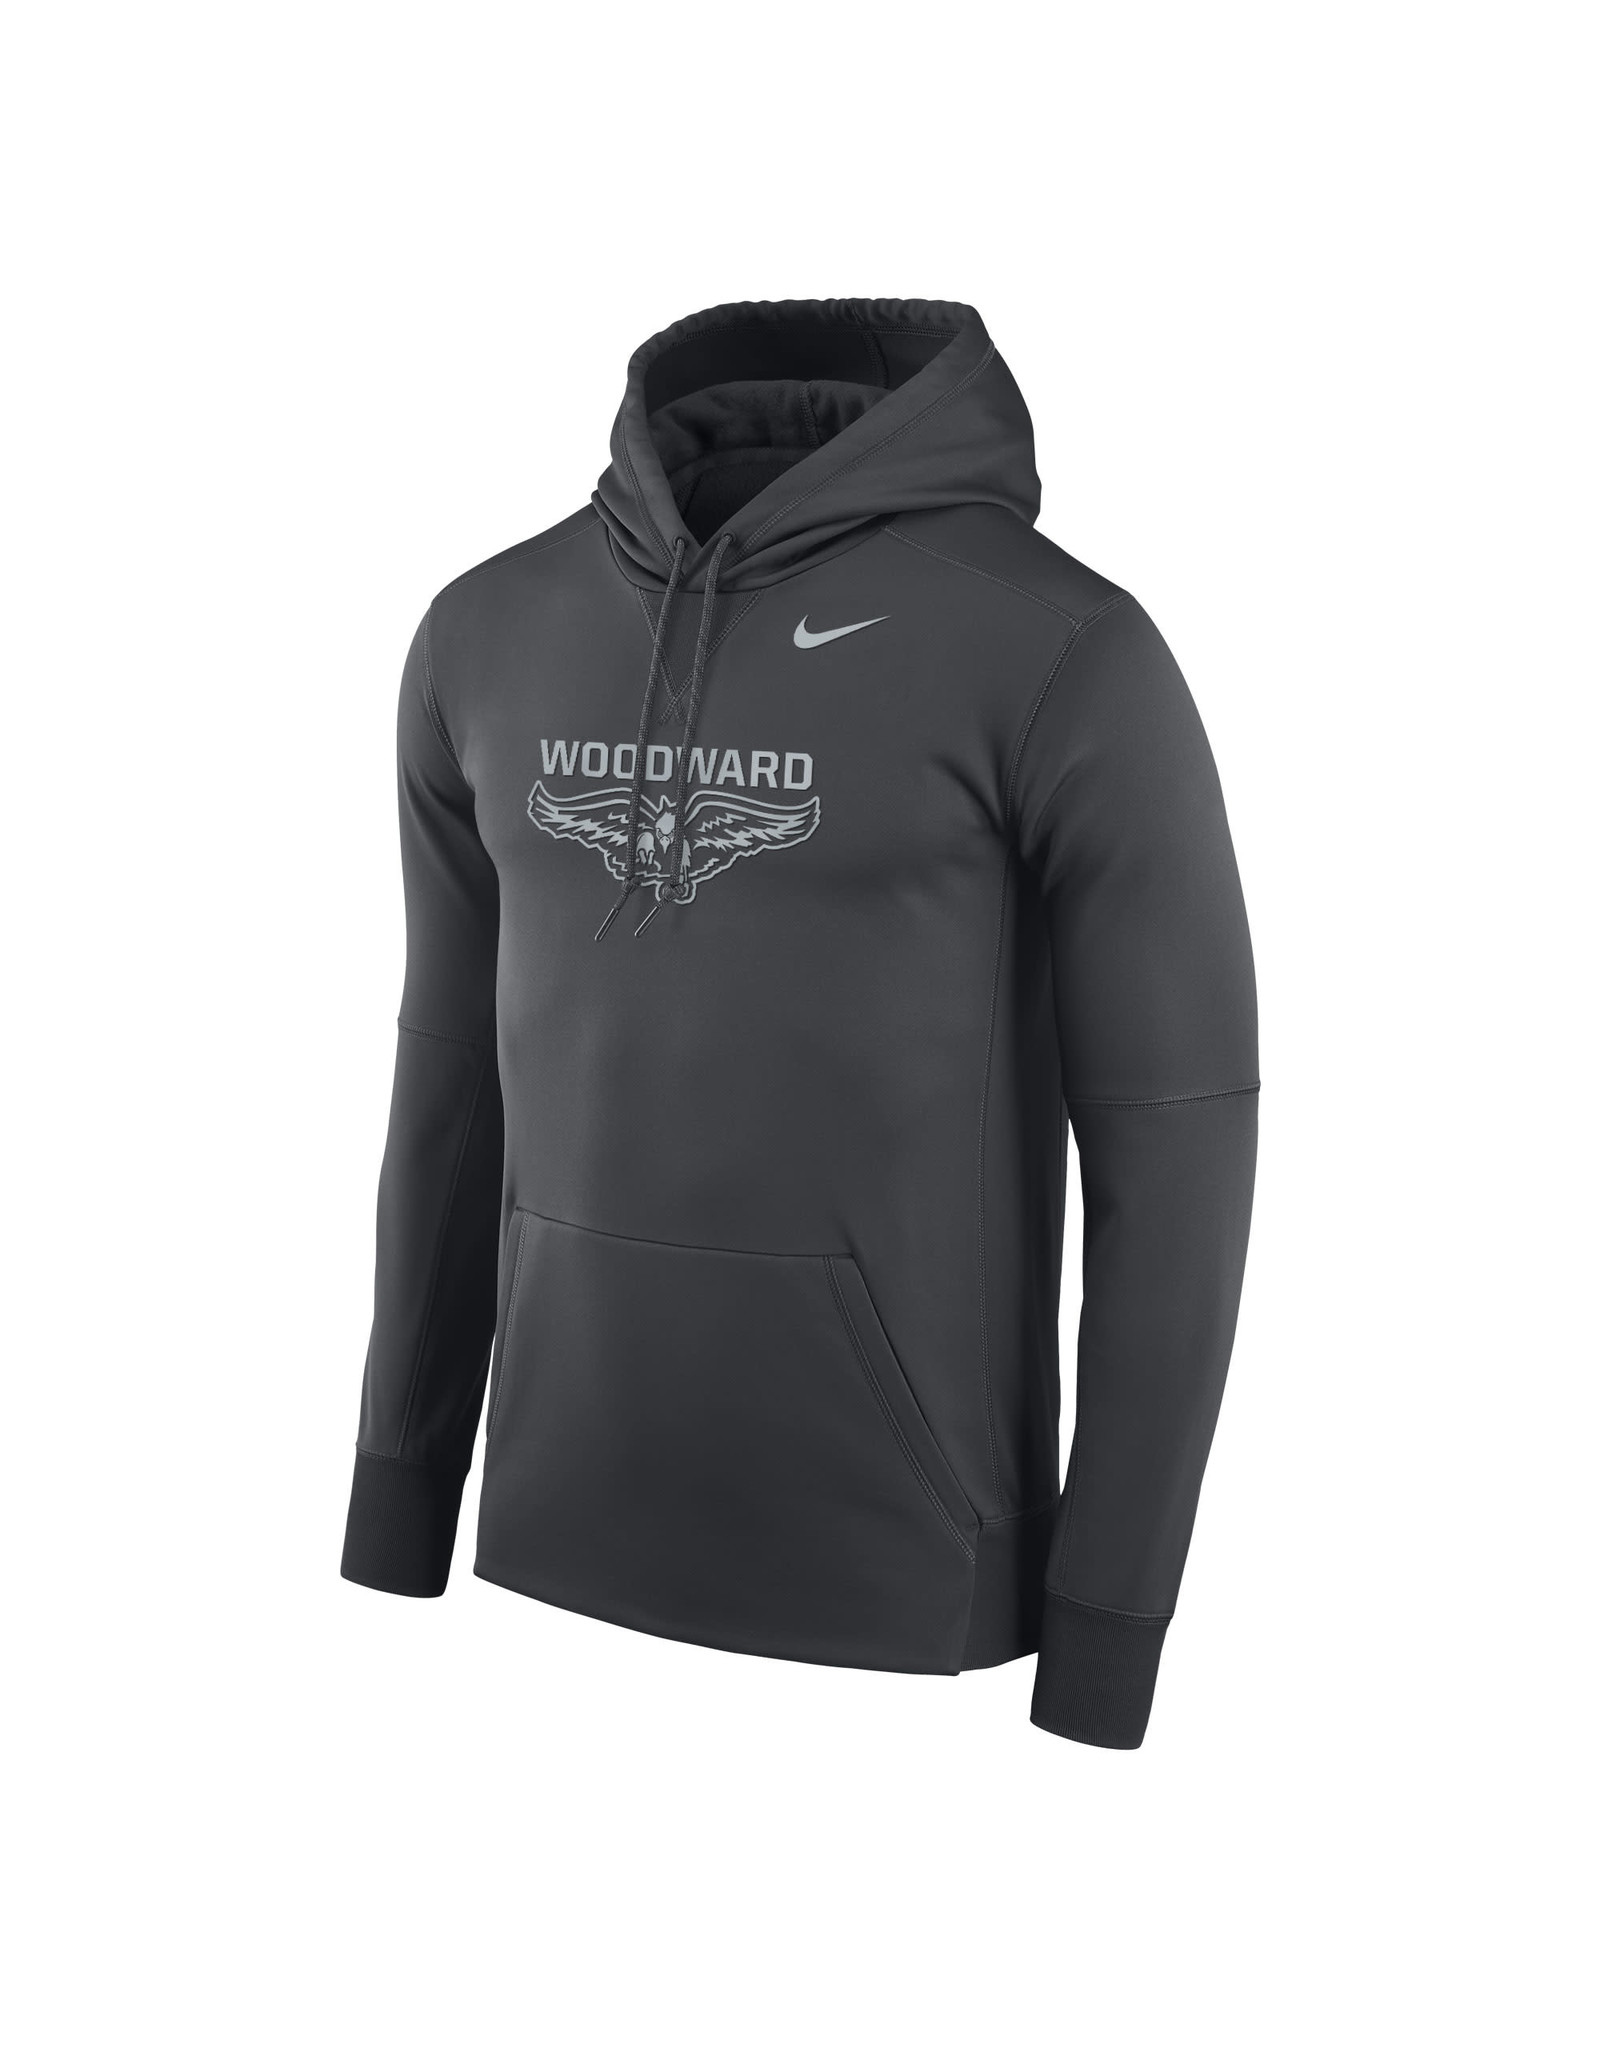 NIKE Reflective Therma PO Hooded Sweatshirt in Anthracite